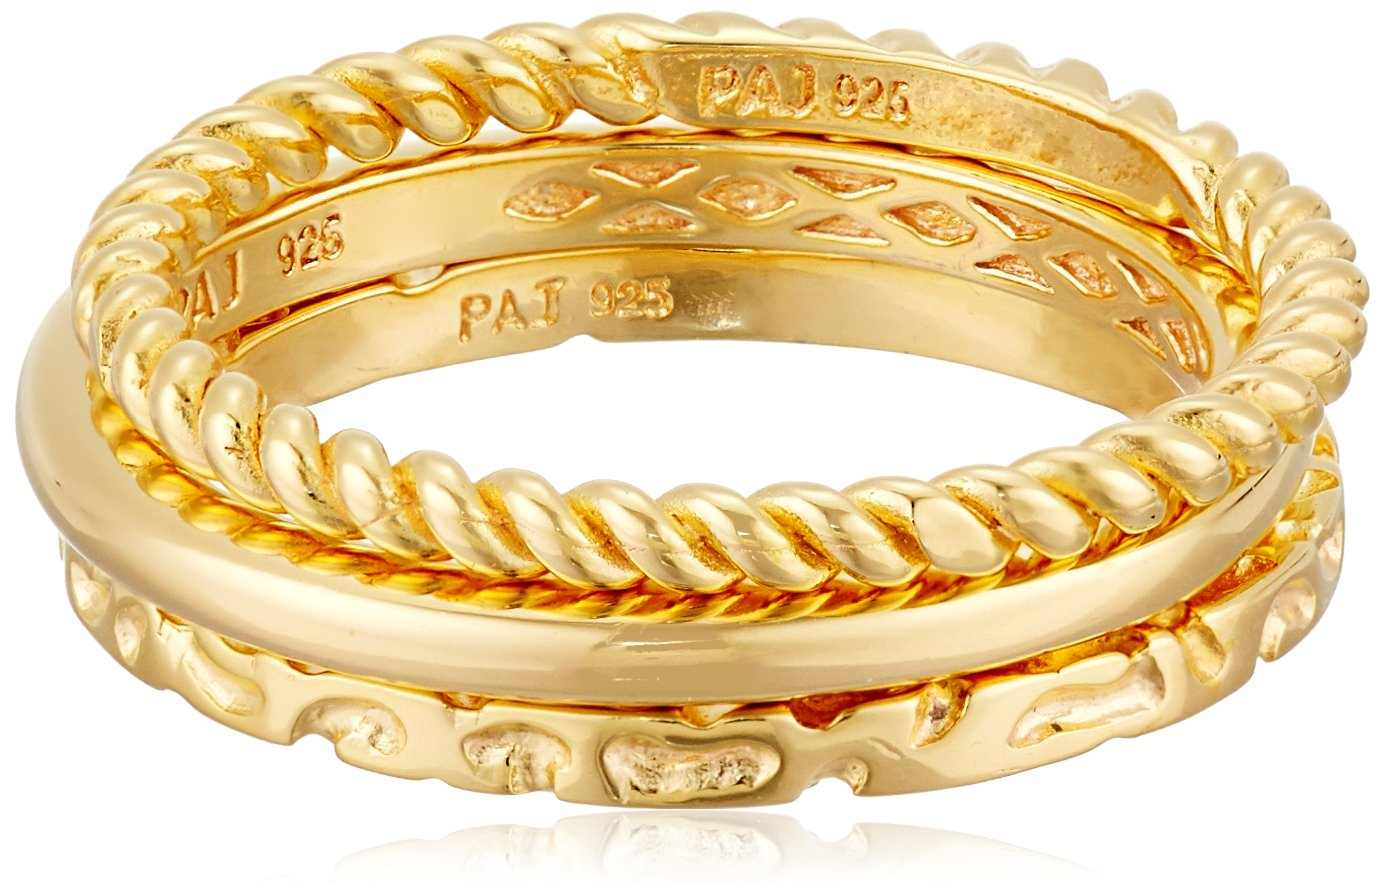 18k Yellow Gold Plated Sterling Silver 3 Piece Stacking Ring Set including Braid, High Polish and Twist Styles, Size 7